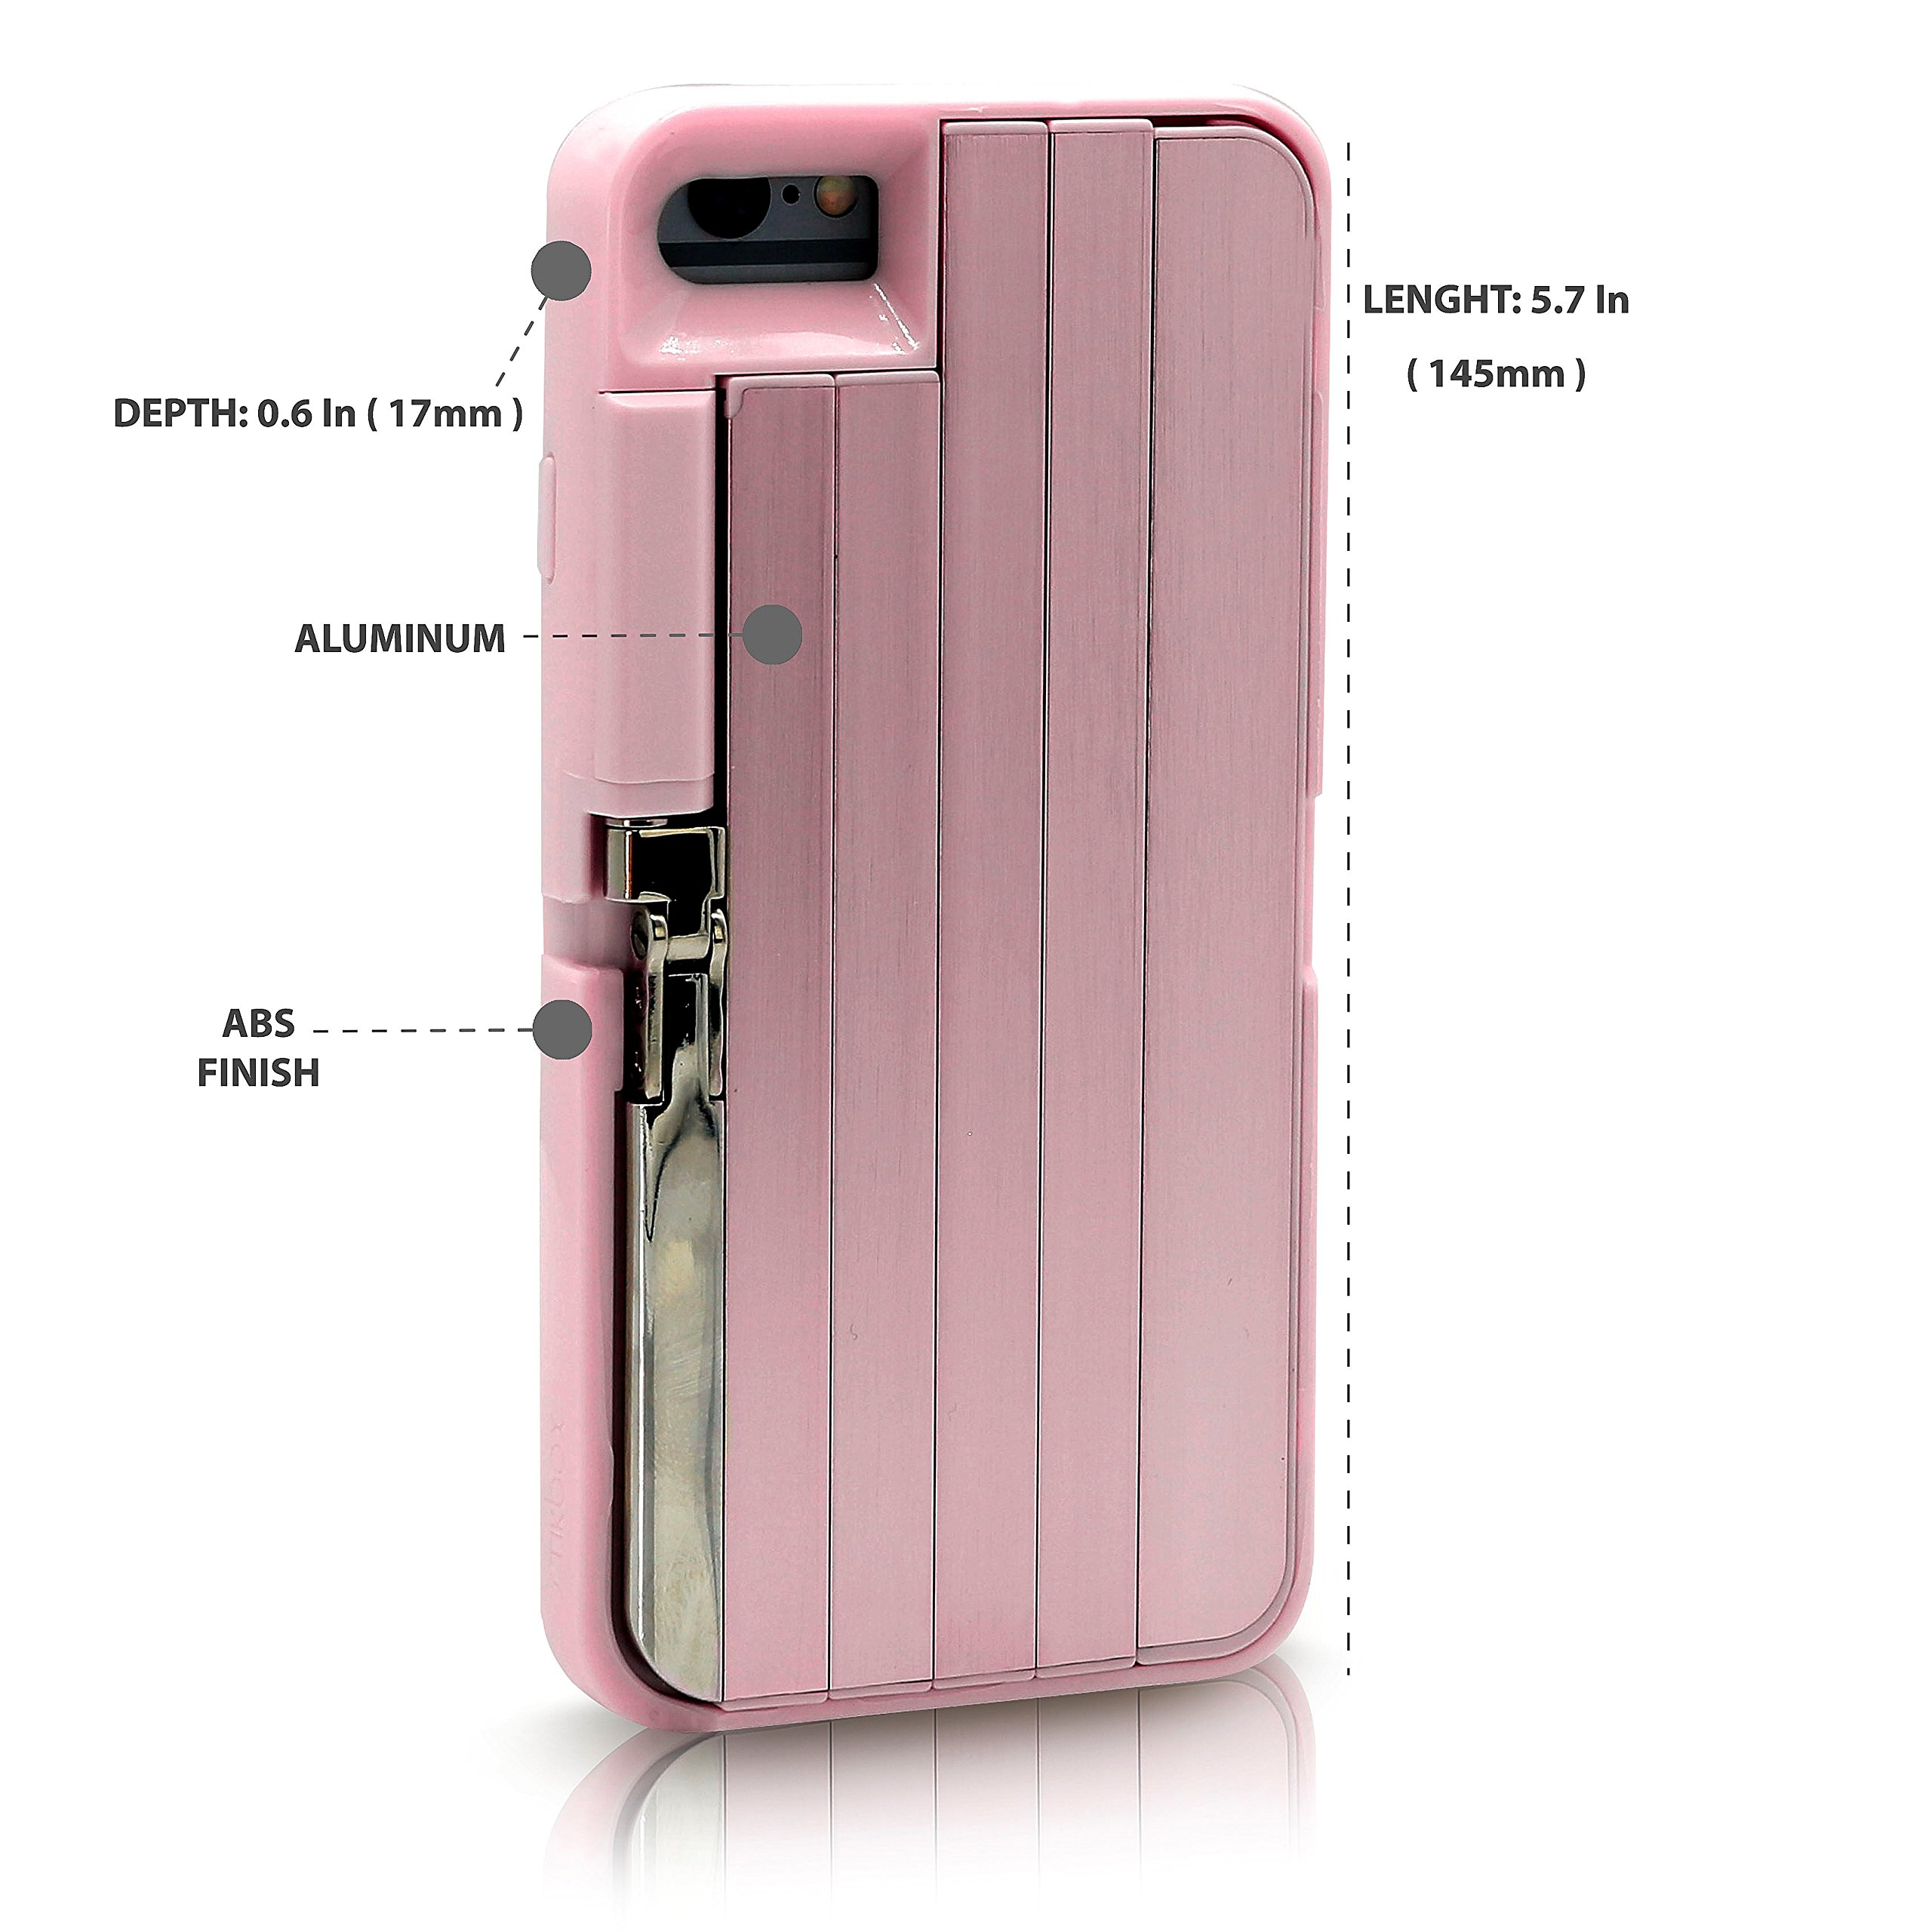 StikBox Selfie Stick iPhone Case, Extendable Monopod W/ Bluetooth Trigger, Lightweight, Rechargeable, Wireless, Pocket Size, 360 degree & 20'' Extension for iPhone 8S/8/7/6S/6 (Pink) by Stikbox